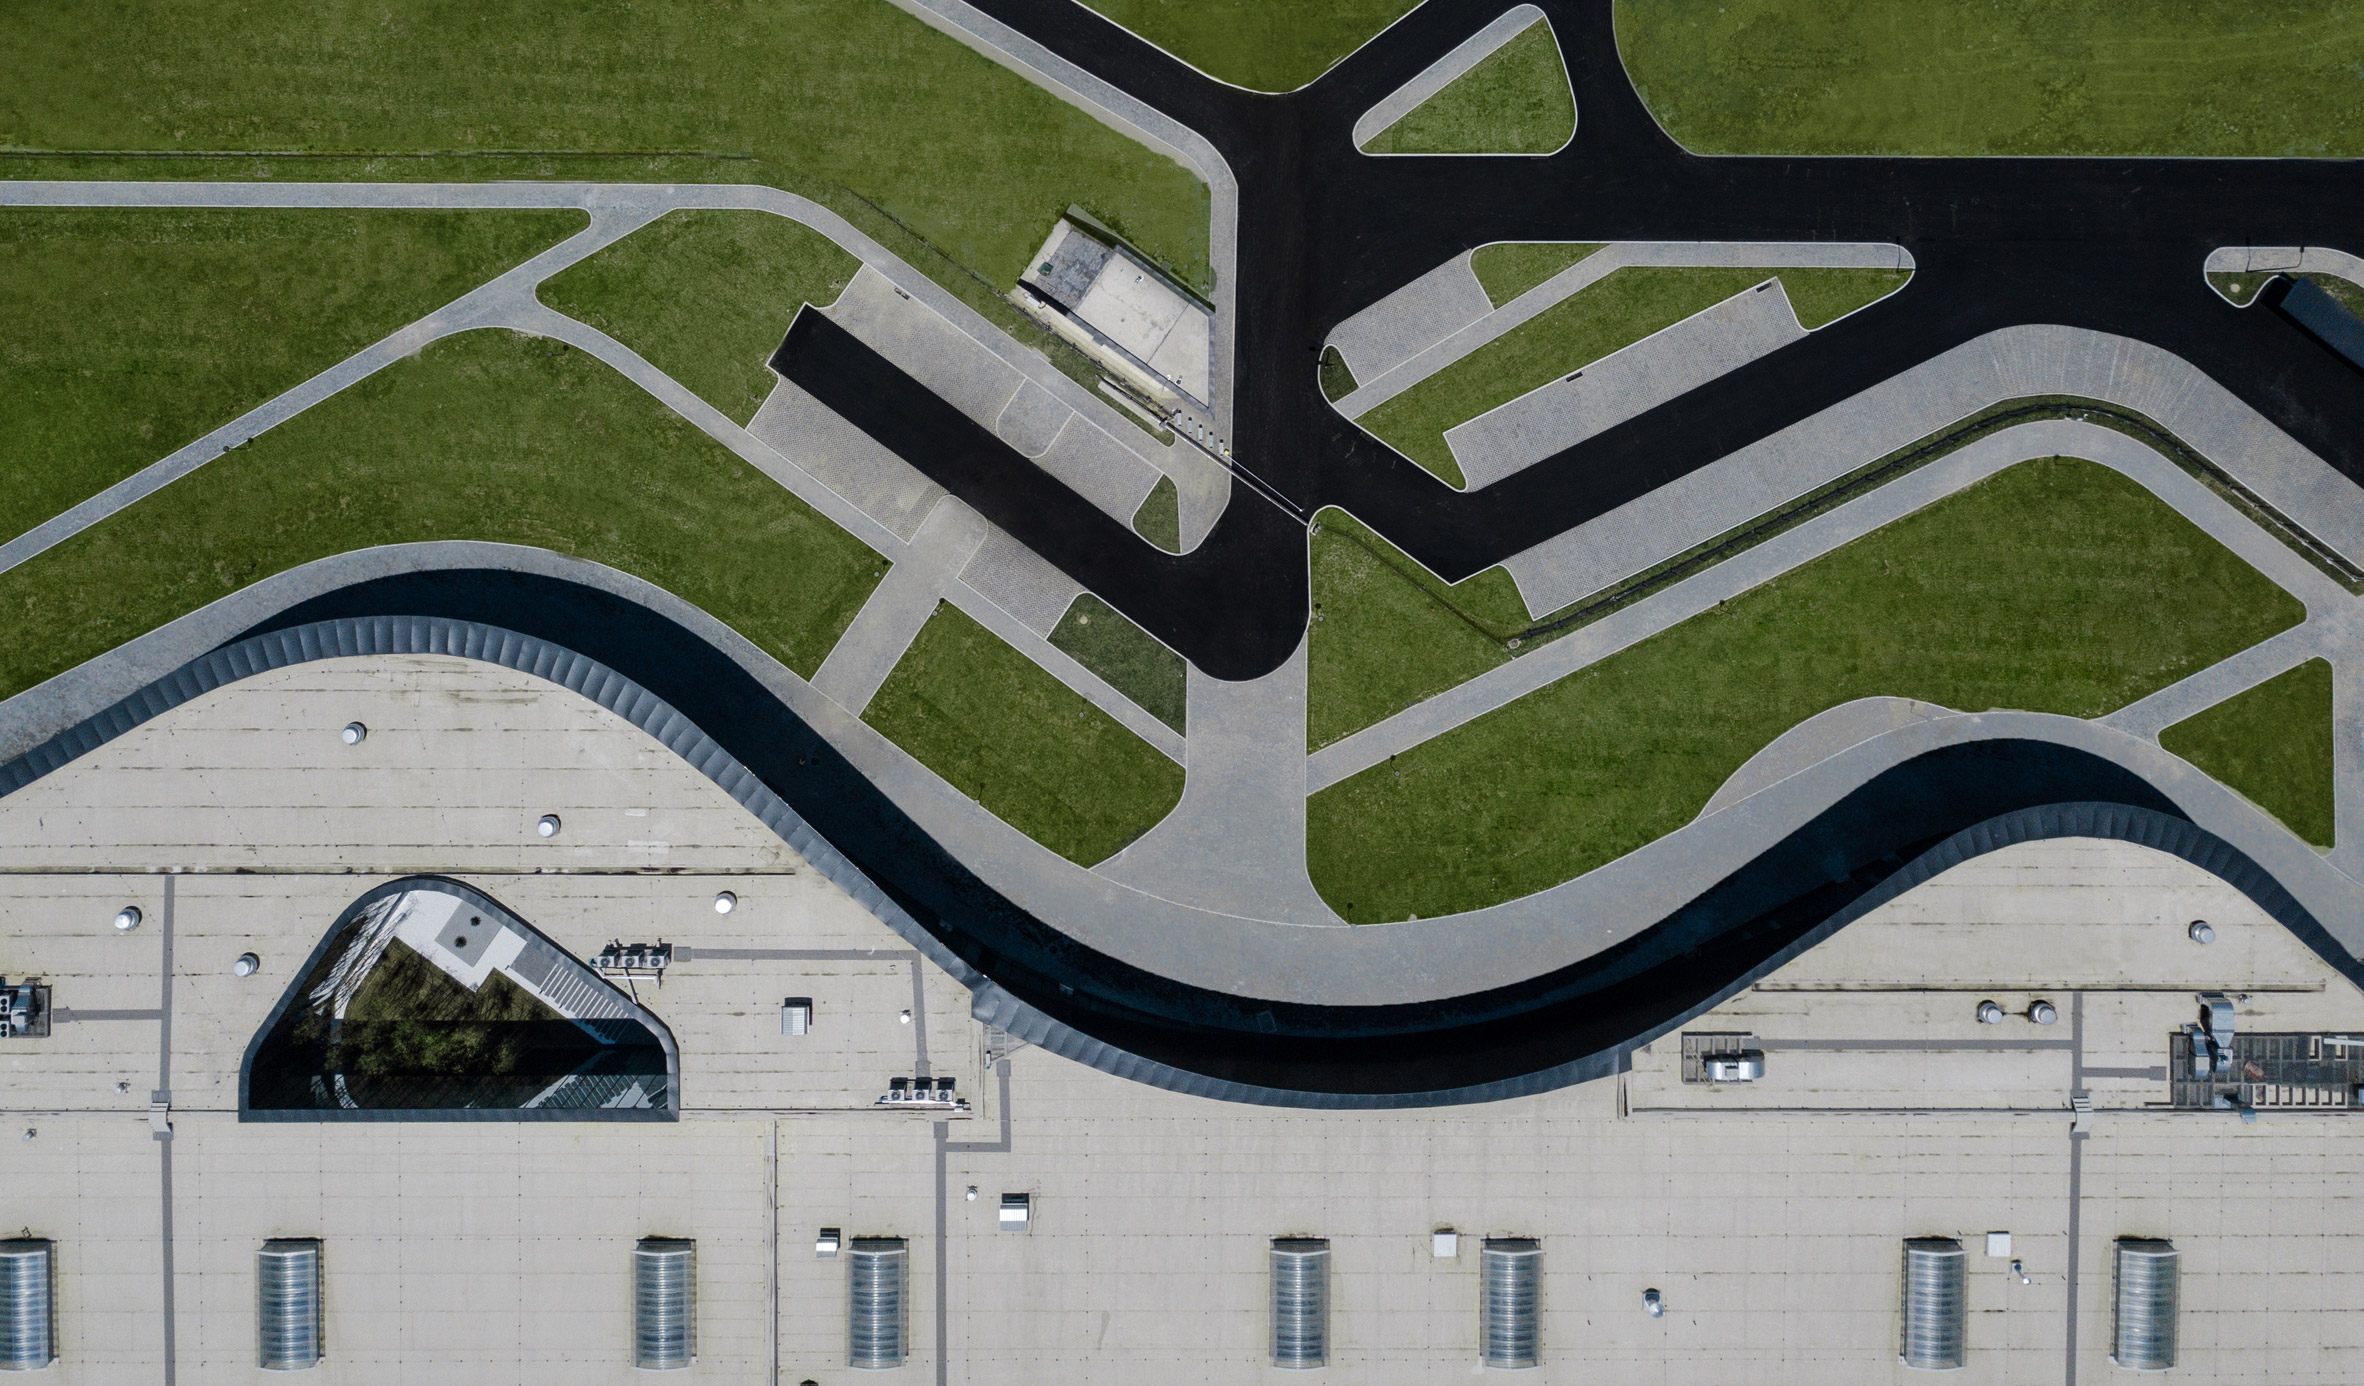 An aerial view of a curved building